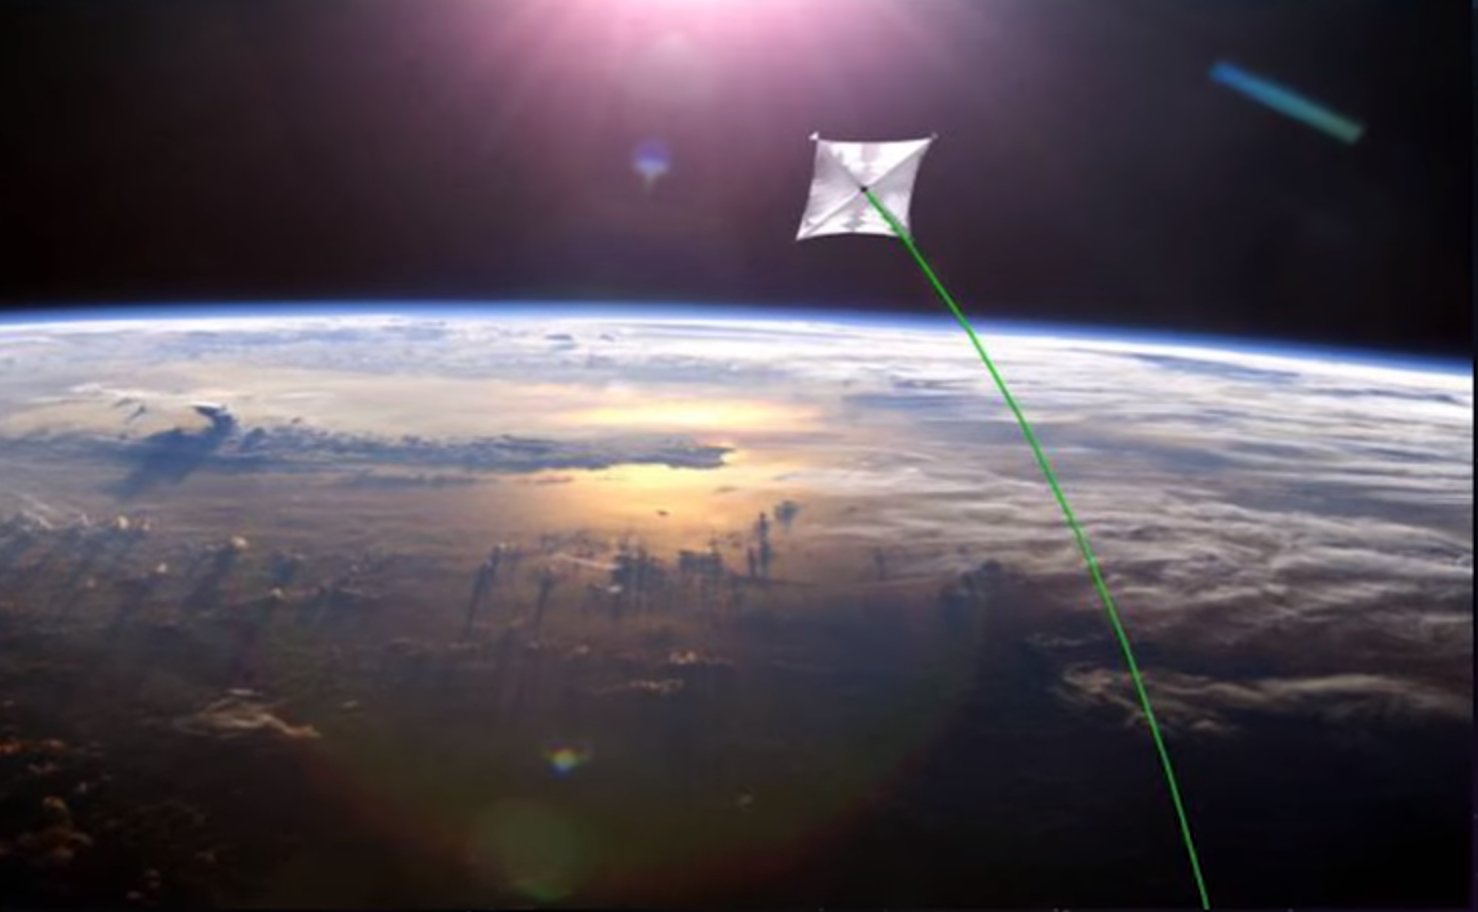 Nasa Researchers Are Working On A Laser Propulsion System